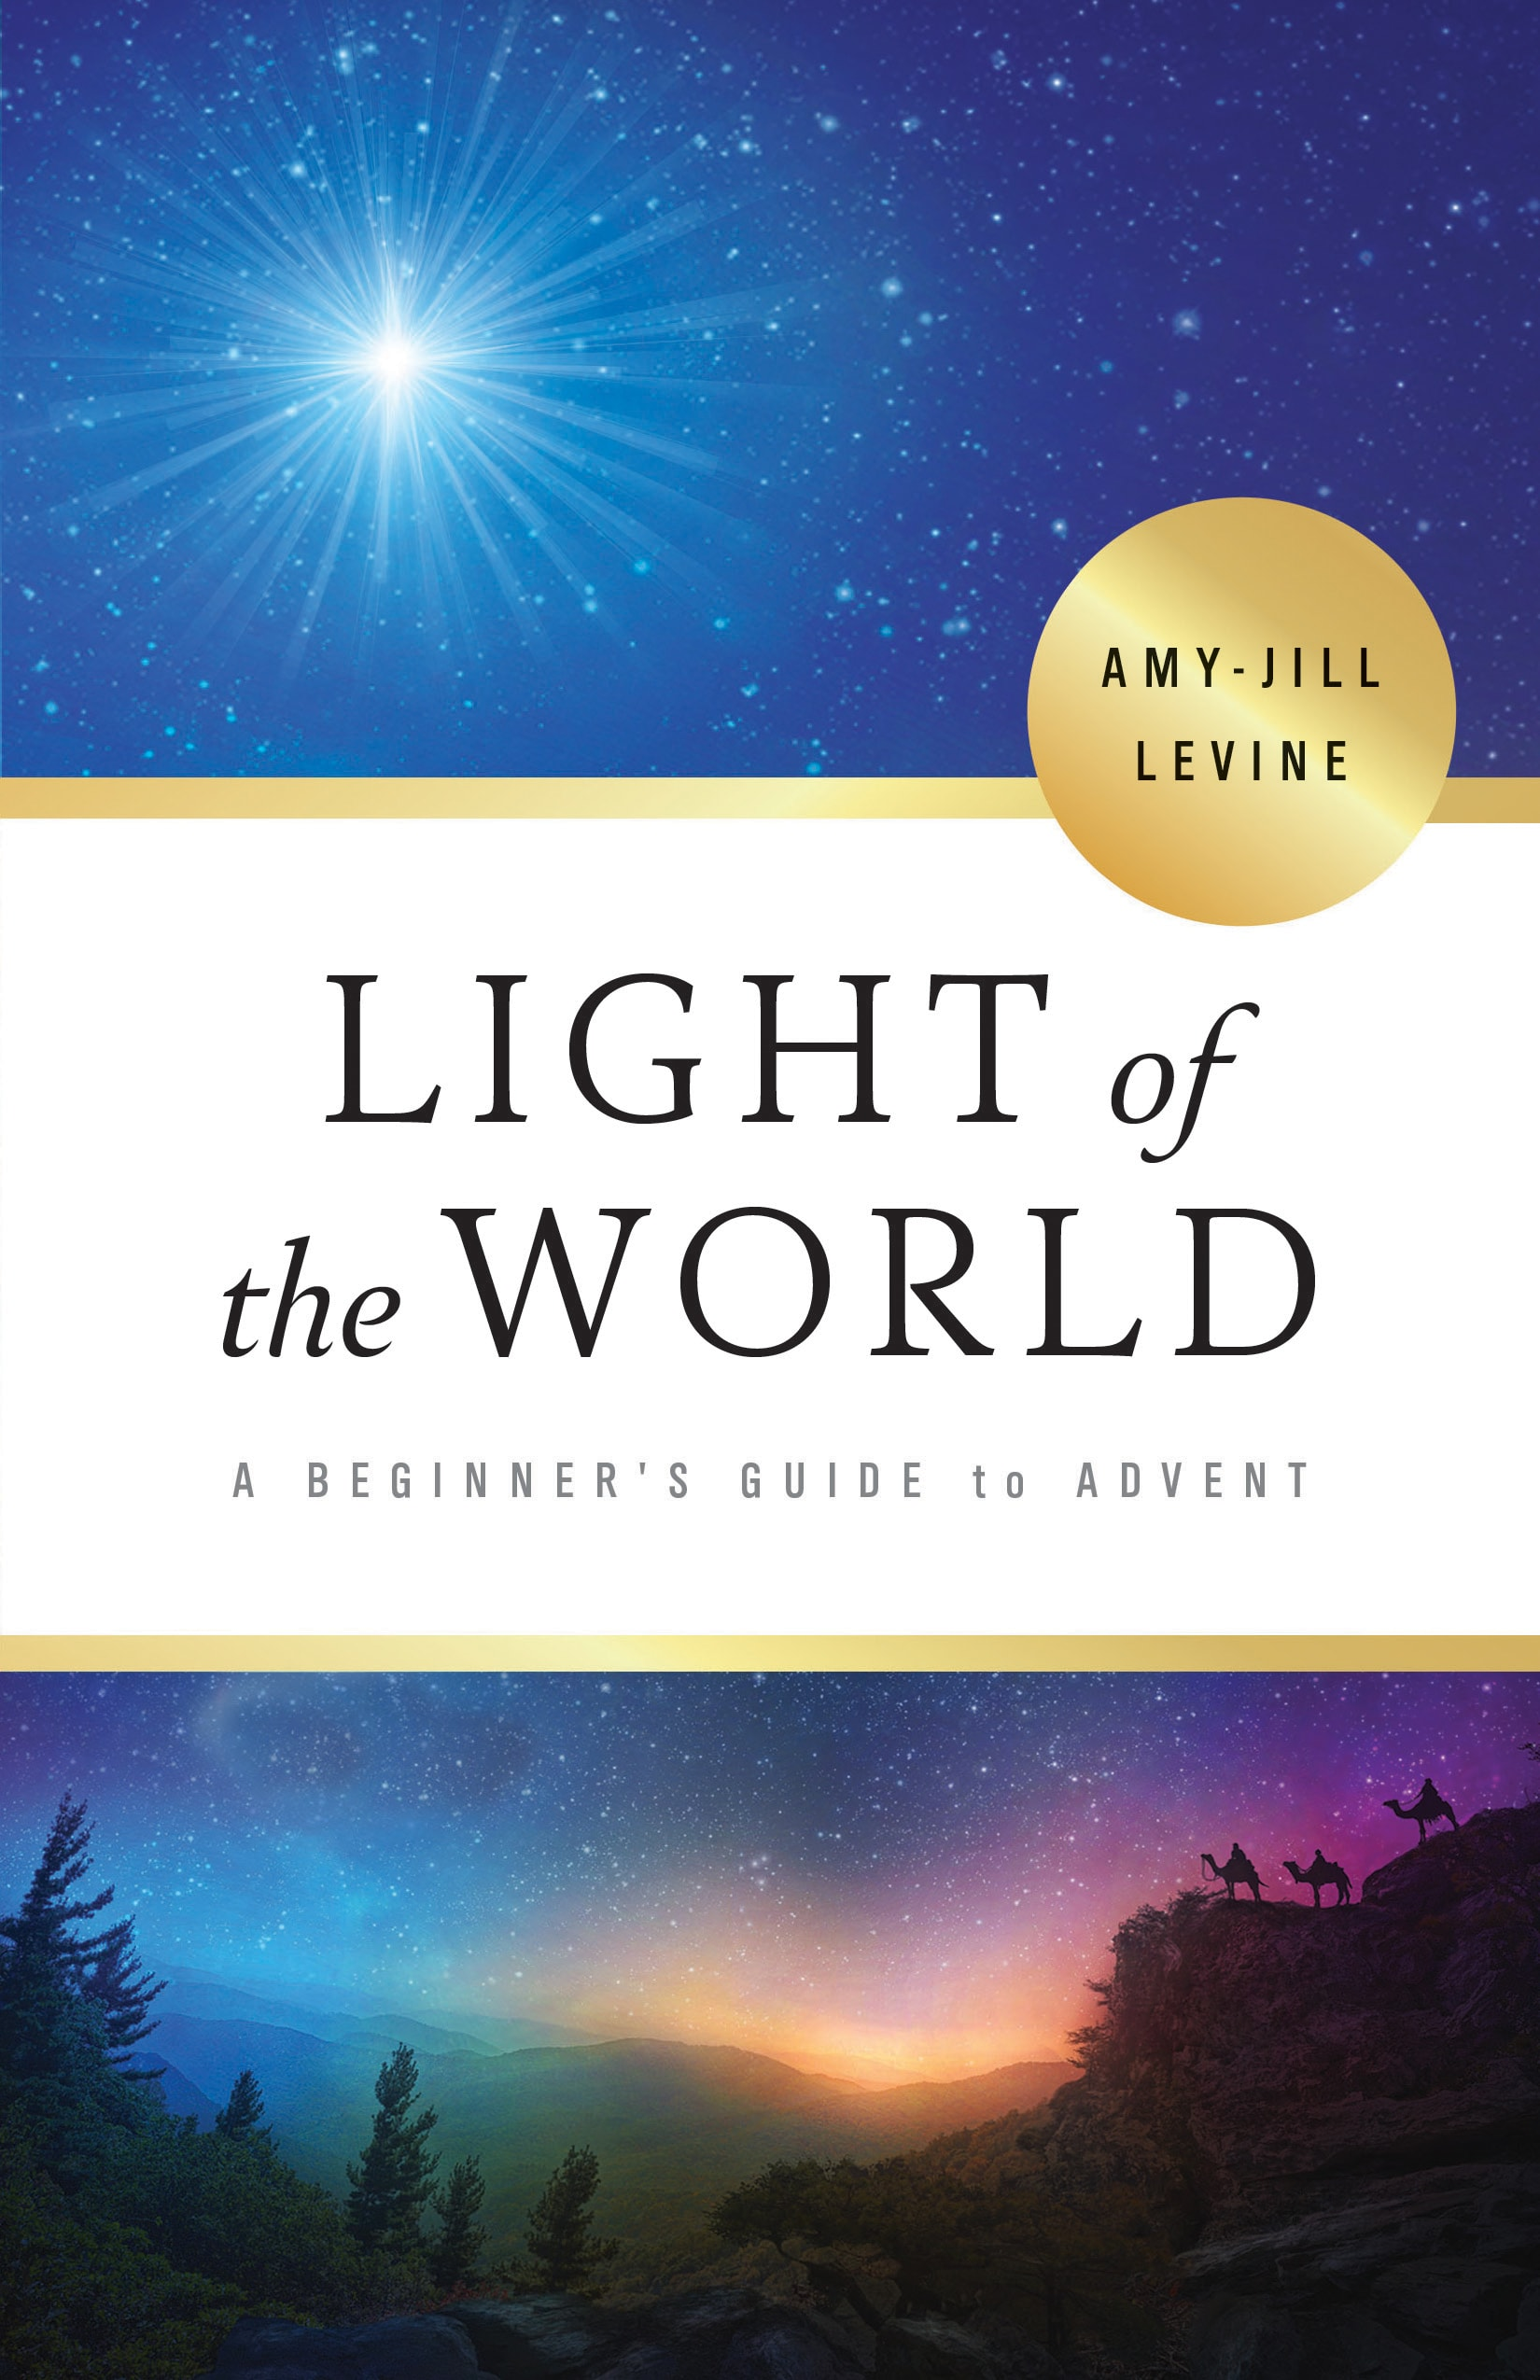 Light of the World: A Beginner's Guide to Advent by Amy-Jill Levine